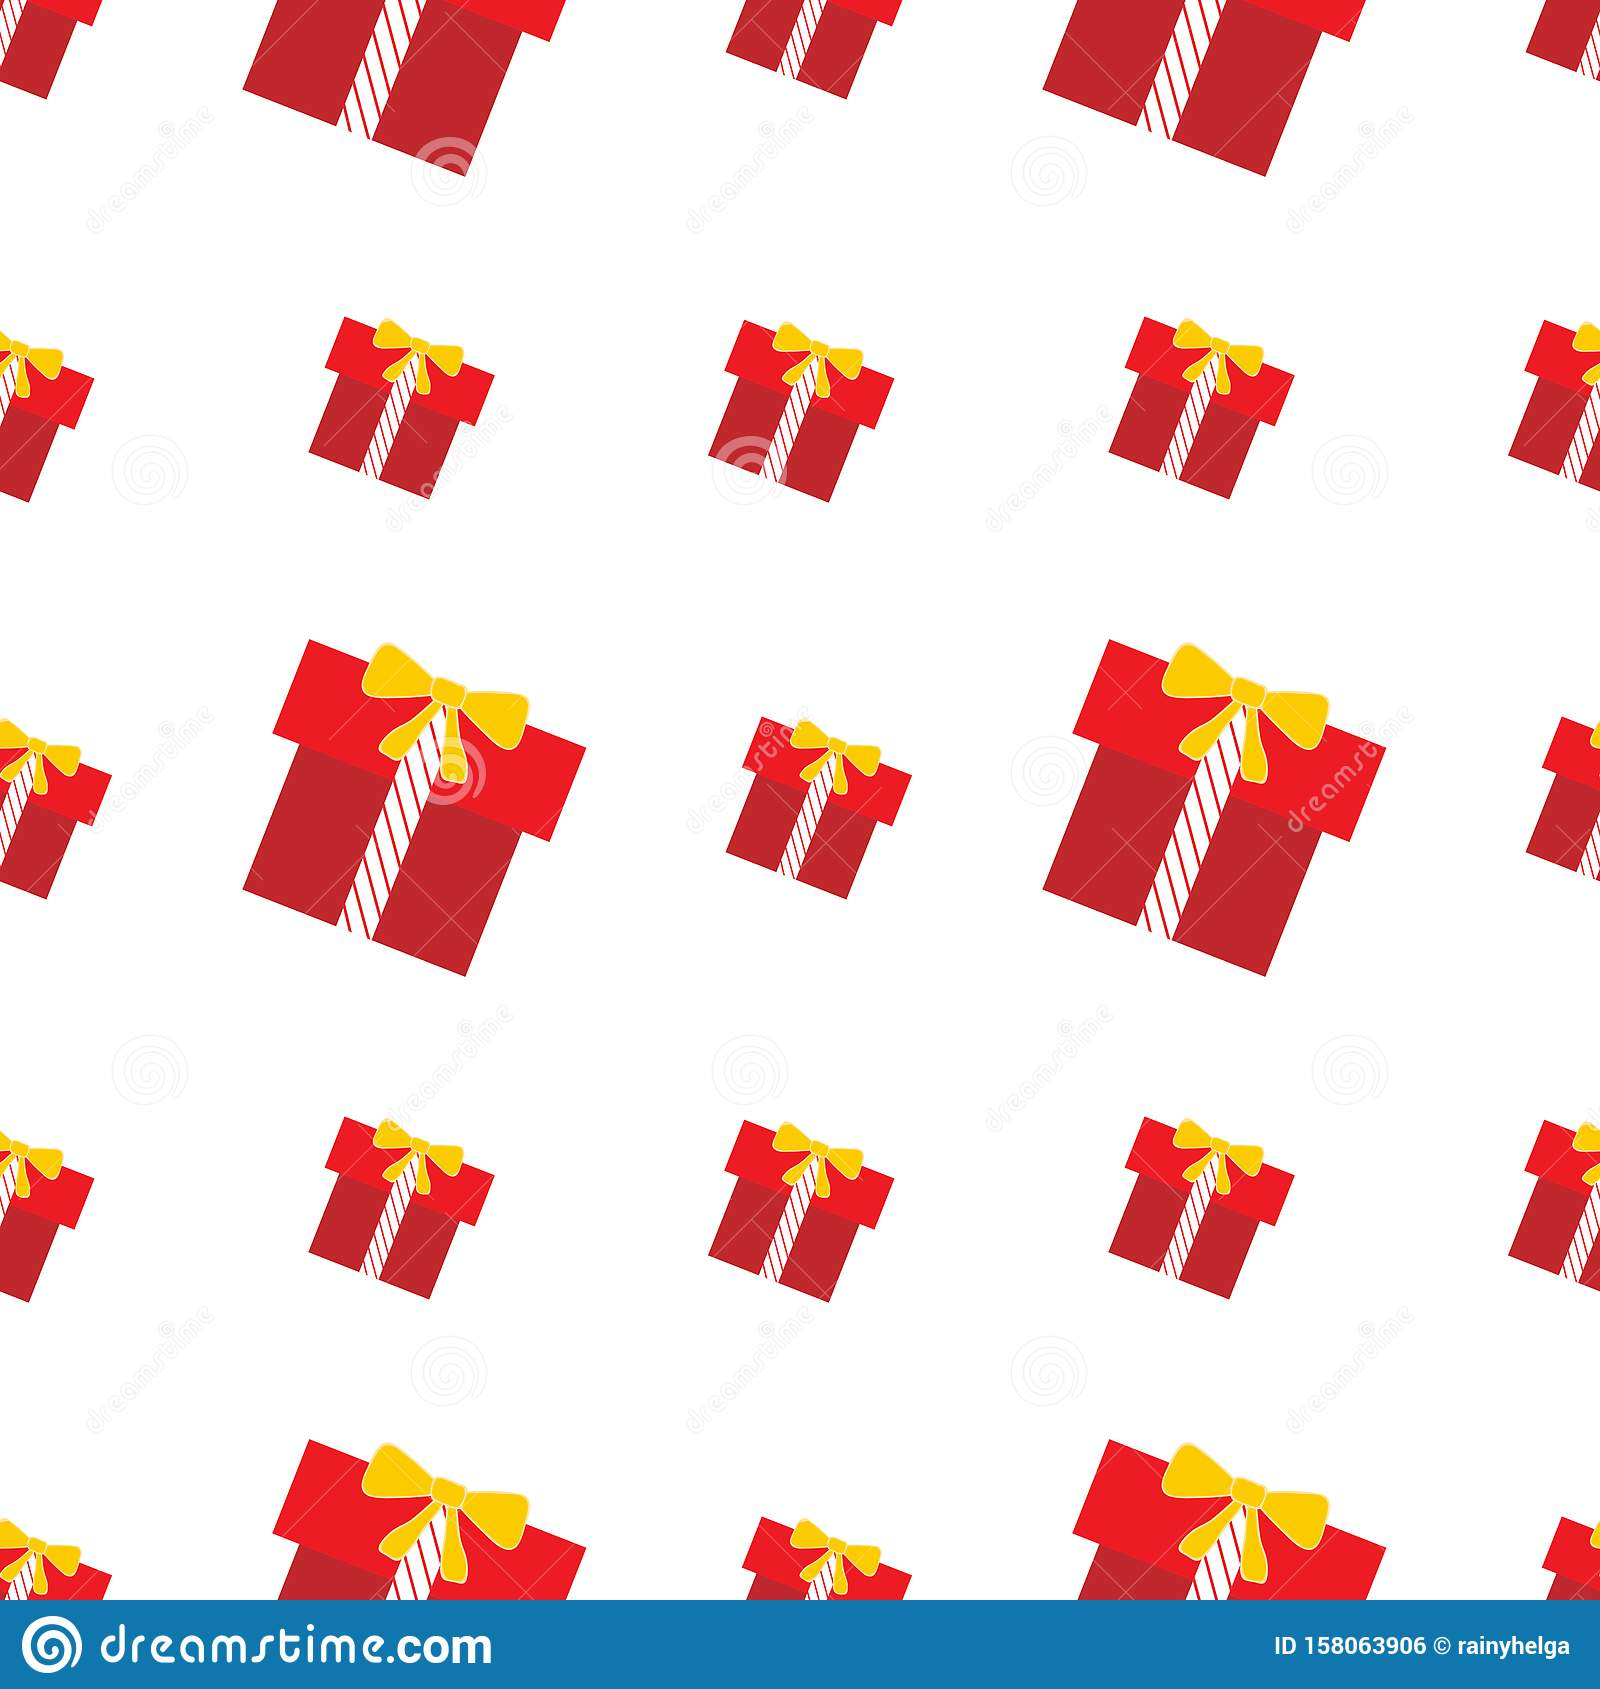 Repeat seamless pattern with red and yellow gift boxes on the white background